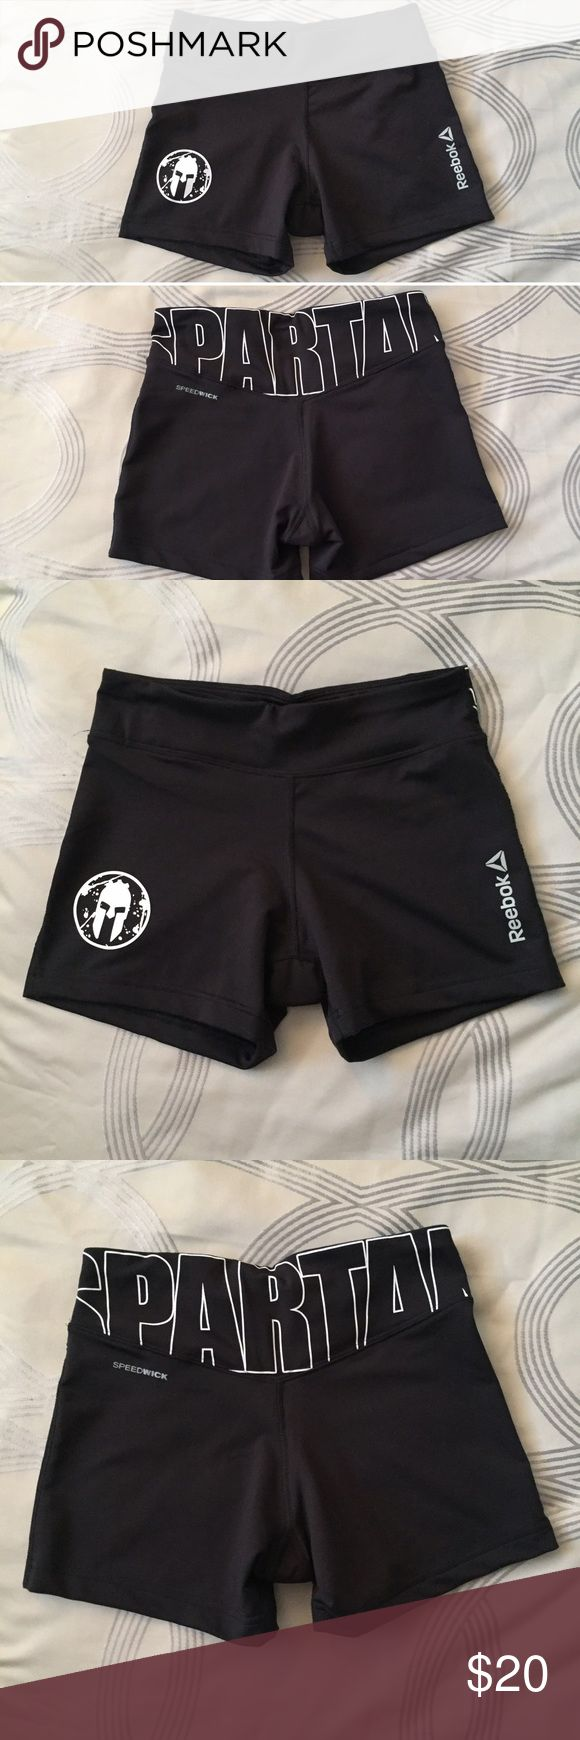 Reebok Spartan Race Shorts Perfect, like-new condition! Only worn once to yoga and washed. Purchased from a Spartan Race gear tent. AROO! Reebok Shorts